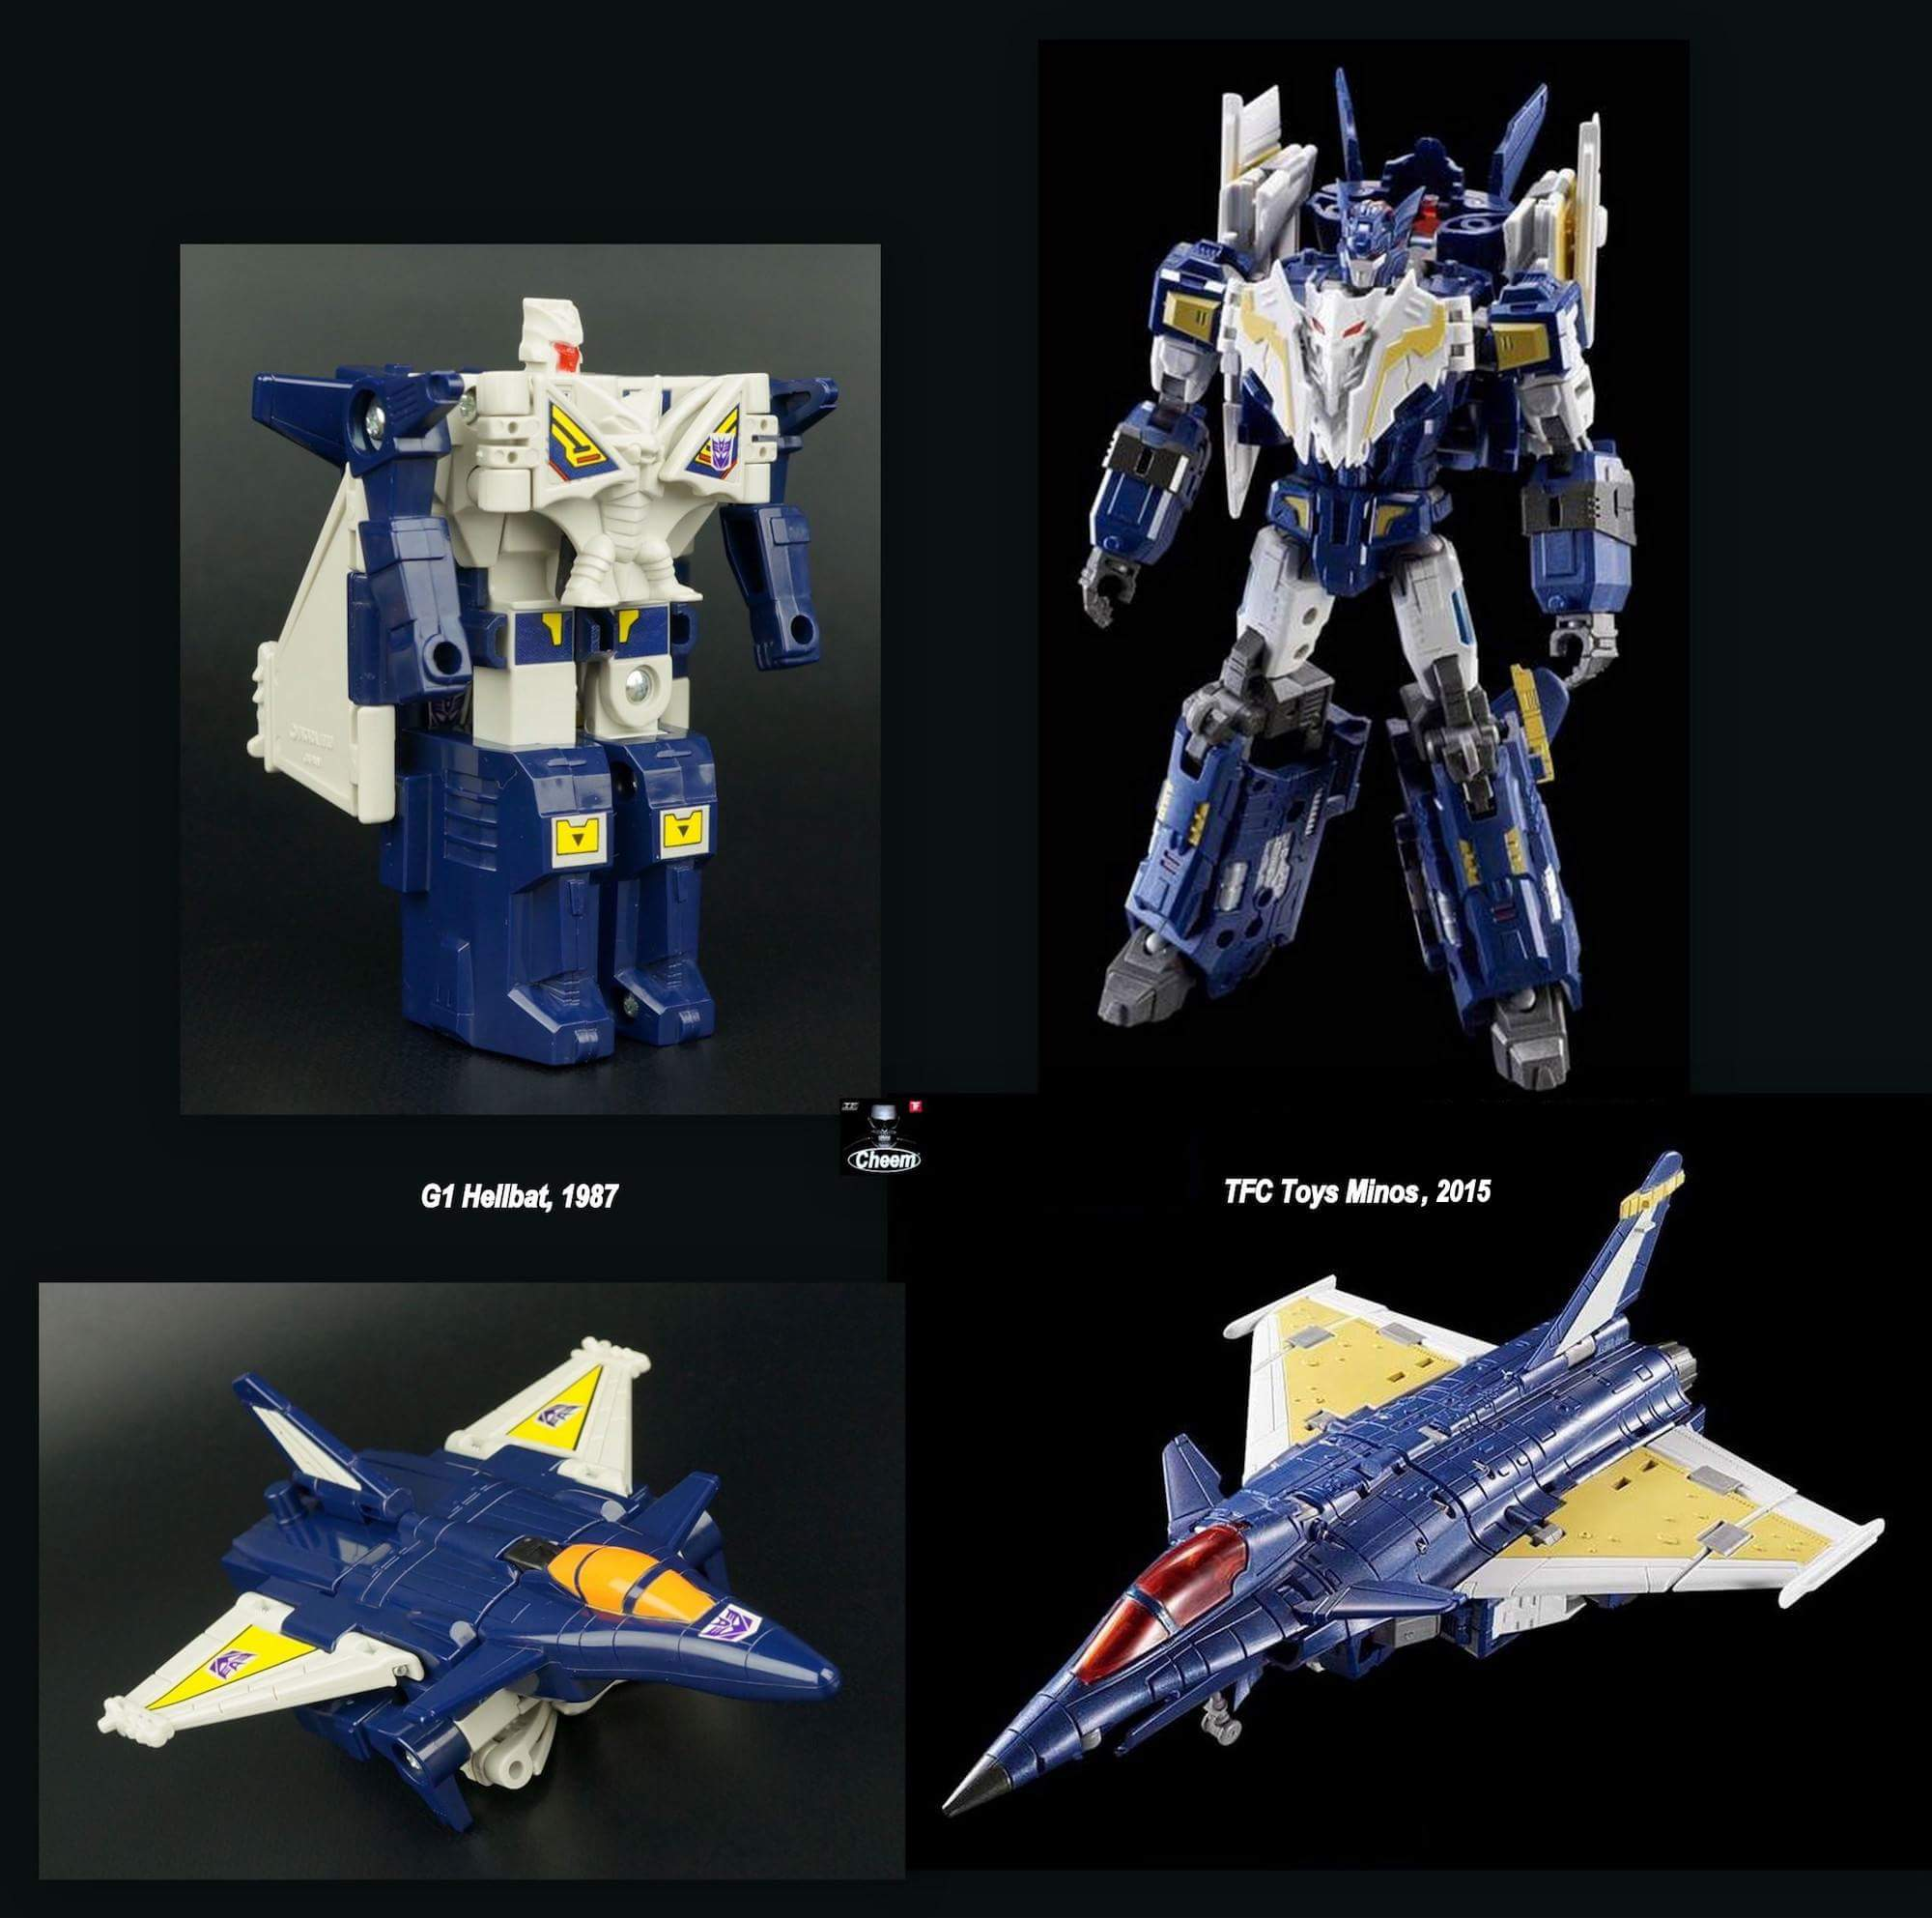 [TFC Toys] Produit Tiers - Jouet Hades - aka Liokaiser (Victory) - Page 3 Nk2eHze3